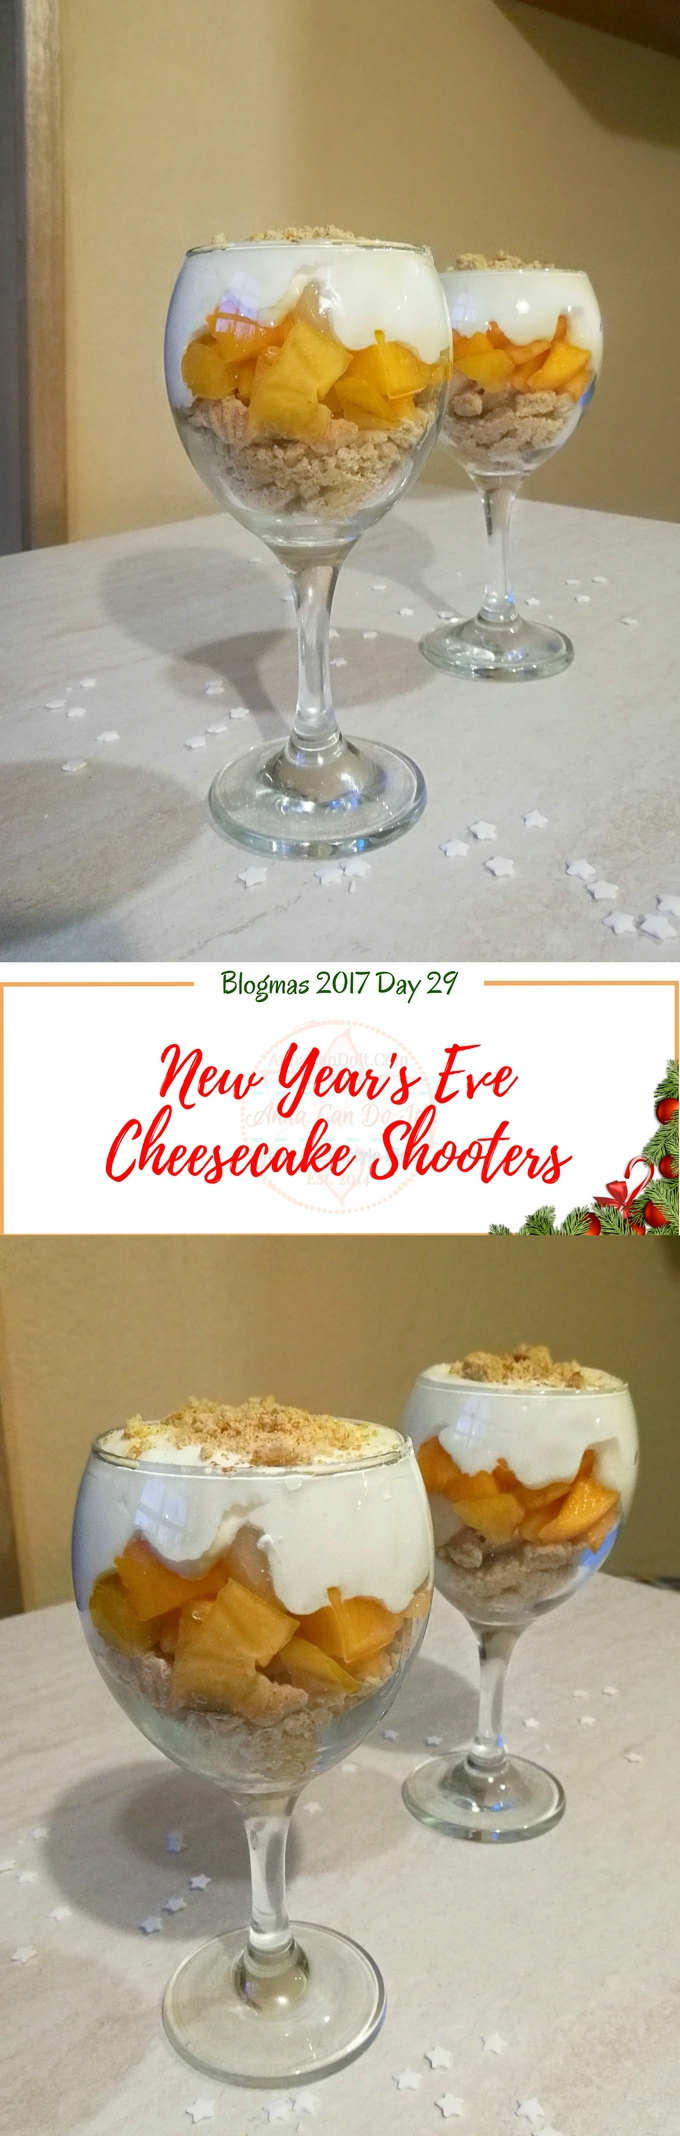 New Year's Eve Cheesecake Shooters - Blogmas 2017 Day 29 - Anna Can Do It!